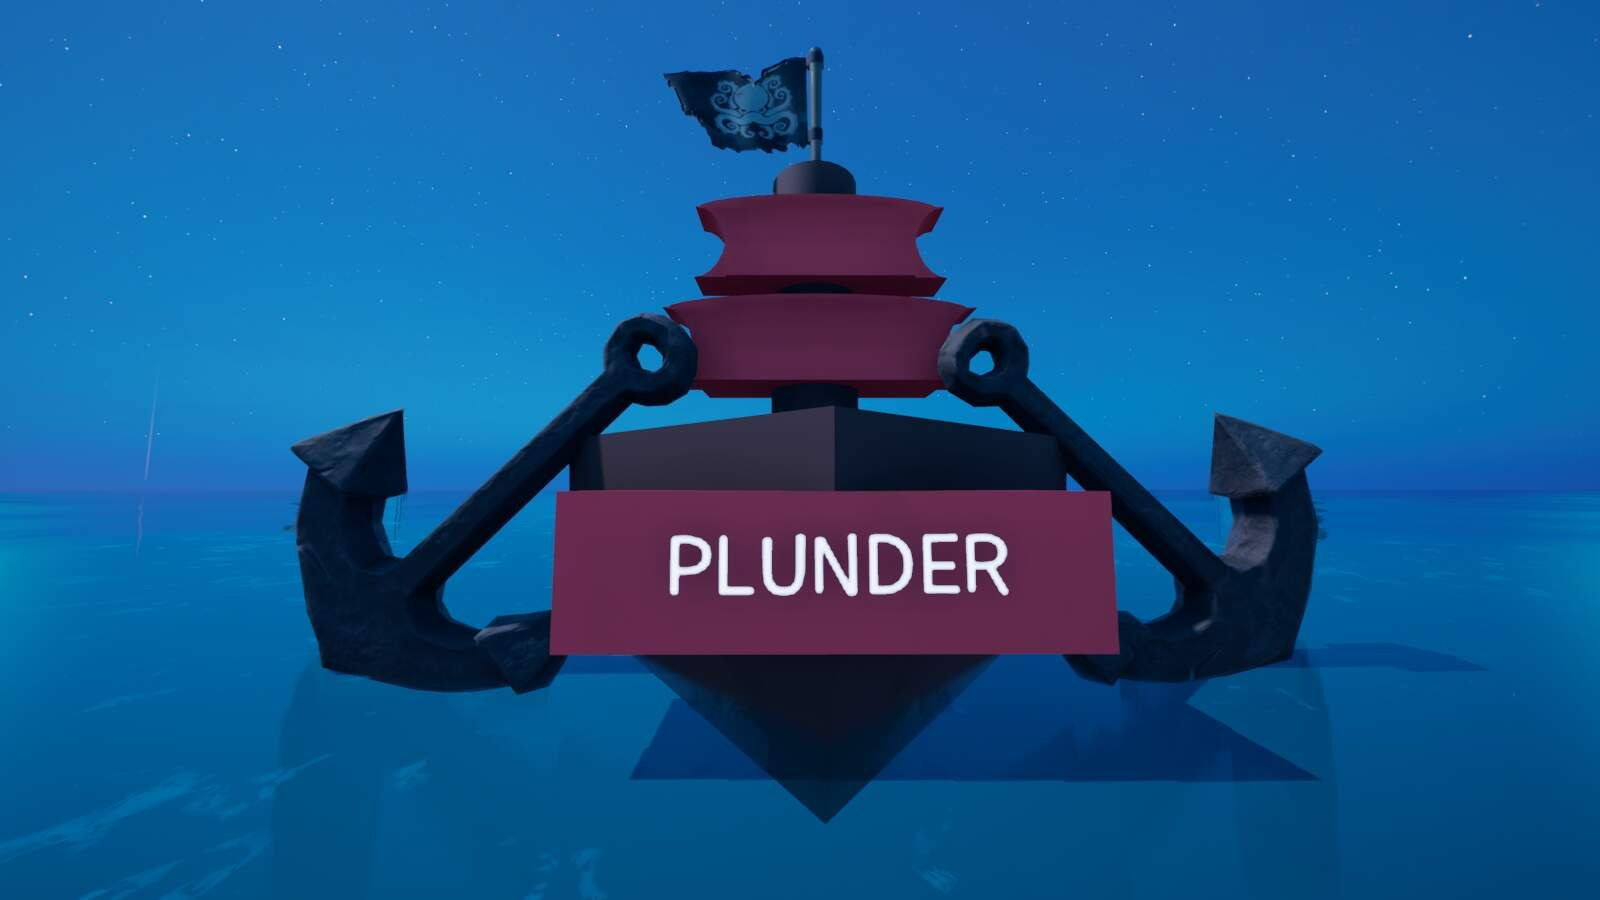 Plunder 2178-4169-7836 by FCT_-